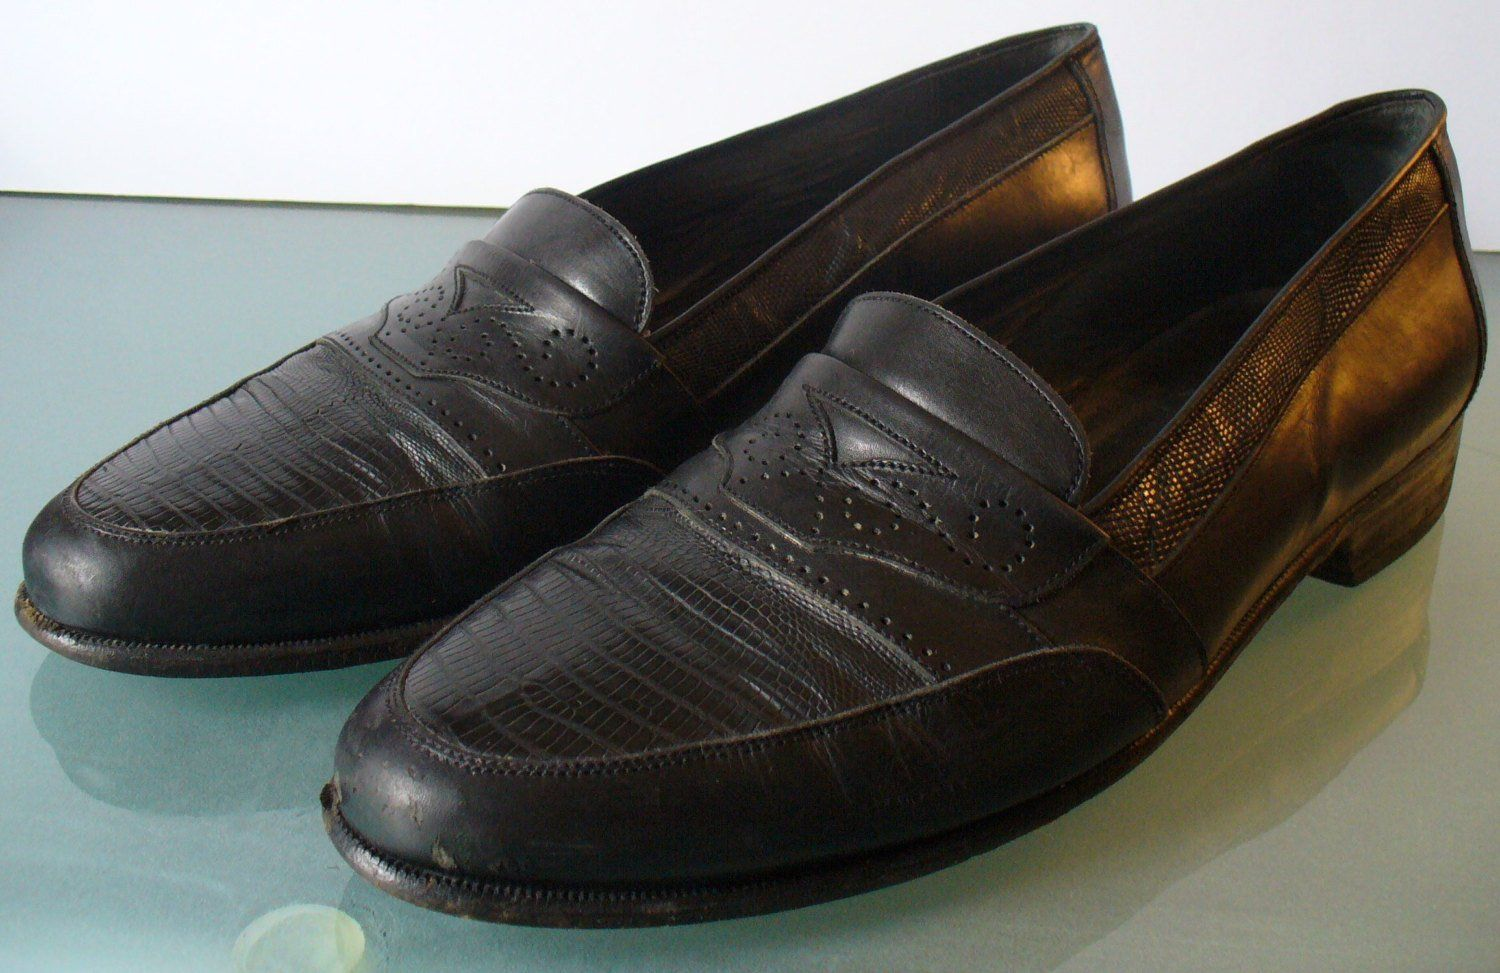 b8534297db3ac Vintage Bally Made in Italy Private Collection Loafers Size 9M by ...